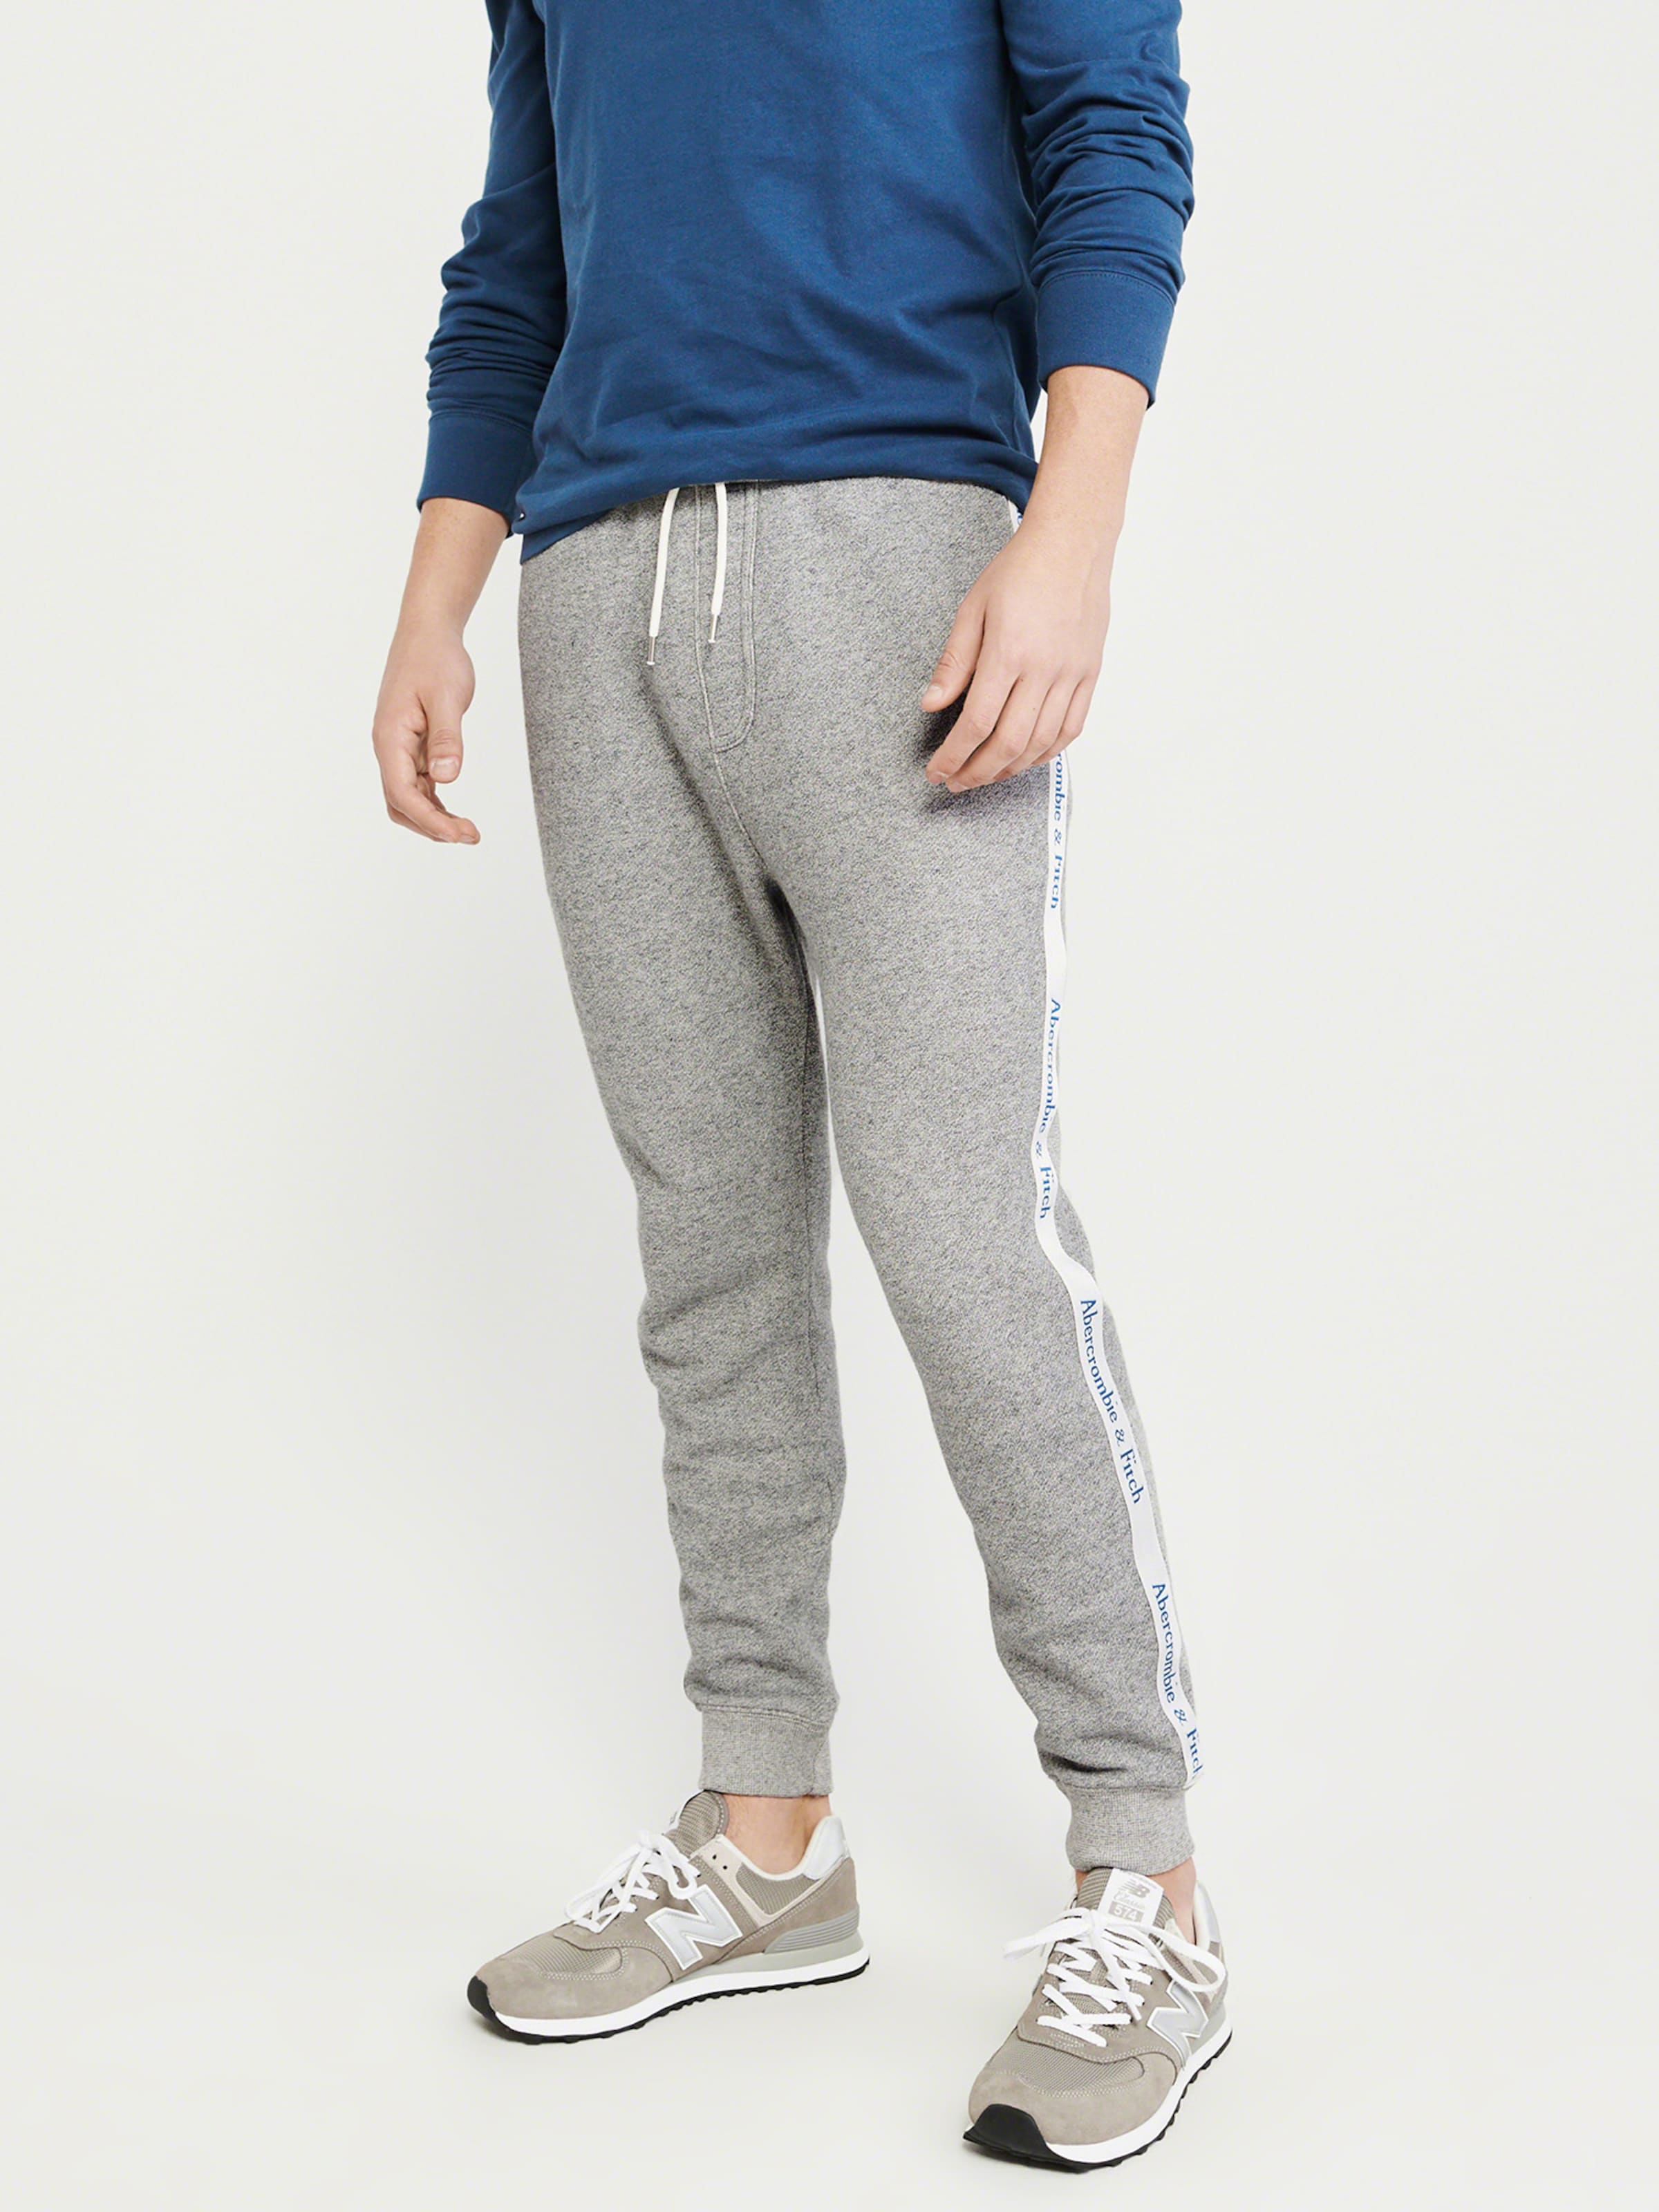 Tape 'side Fitch Hosen Grau Jogger In Abercrombieamp; Grey R02' P0OwN8nkX